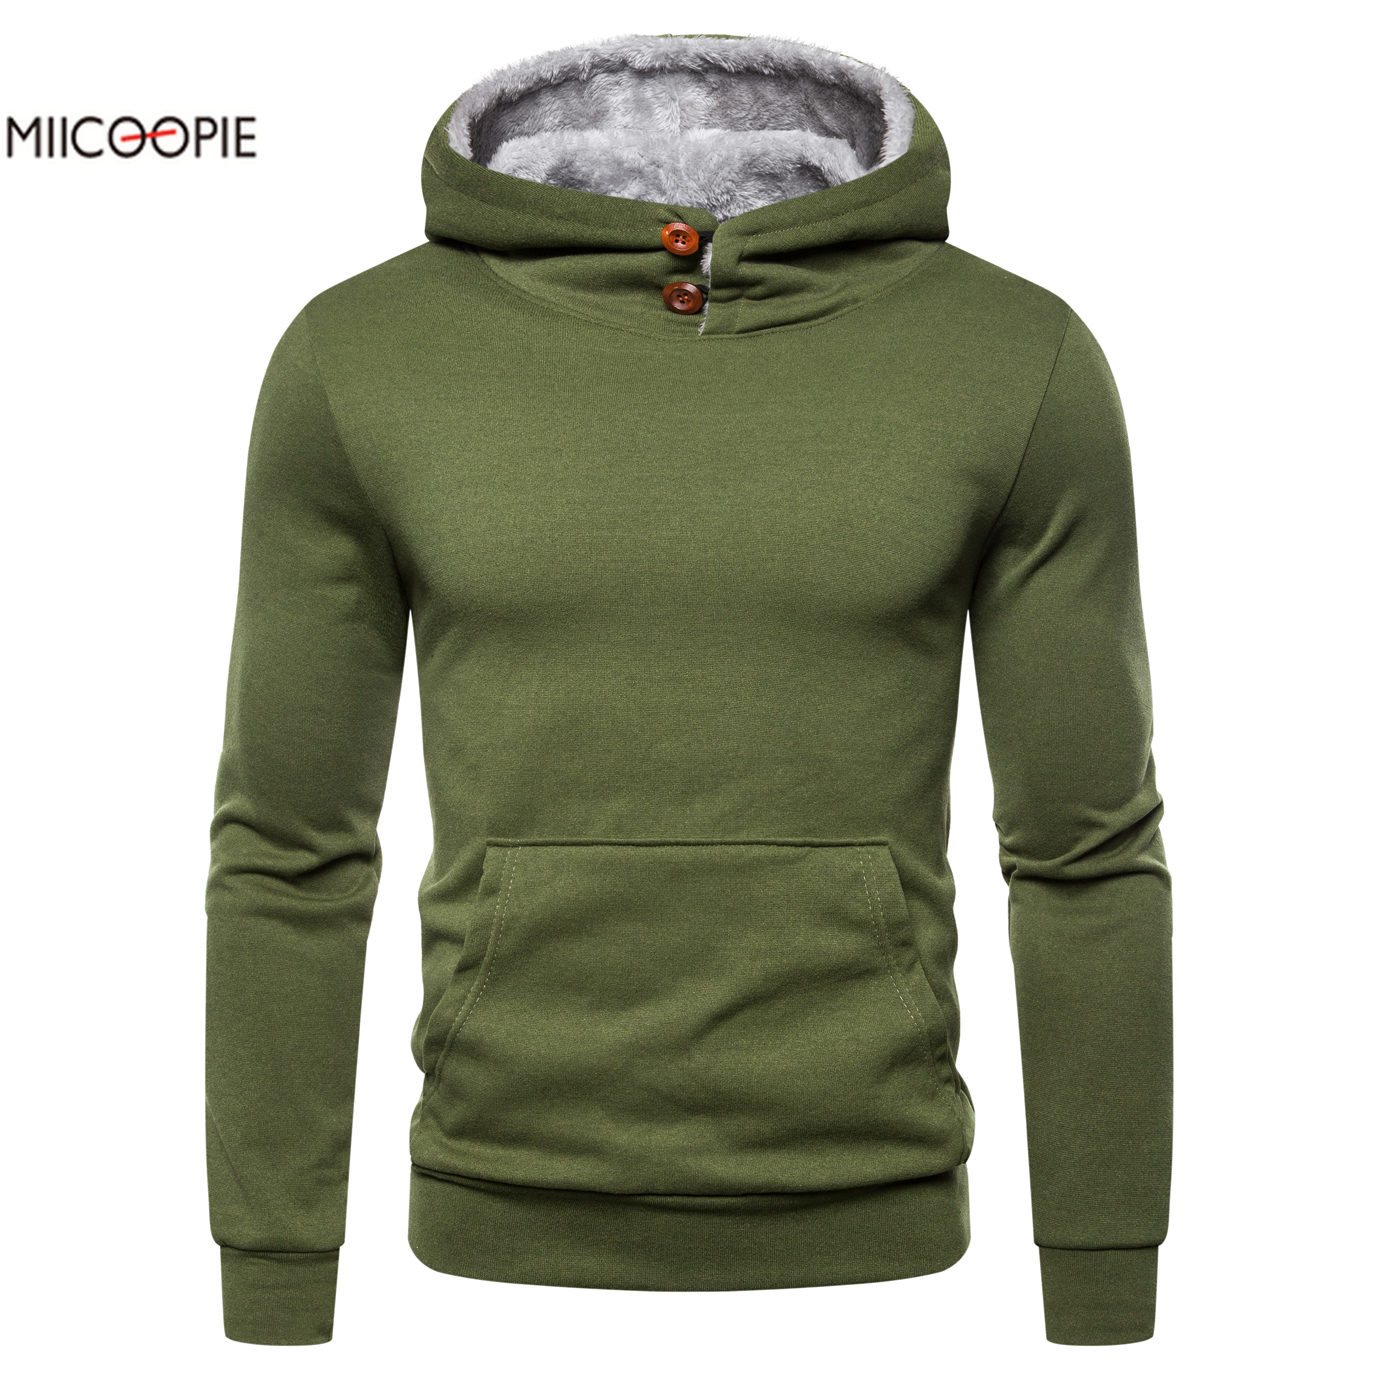 Miicoopie 2019 Mens Hoodies Autumn New Men's Long Sleeve Fleece Pullover Hoodie Sweatshirt